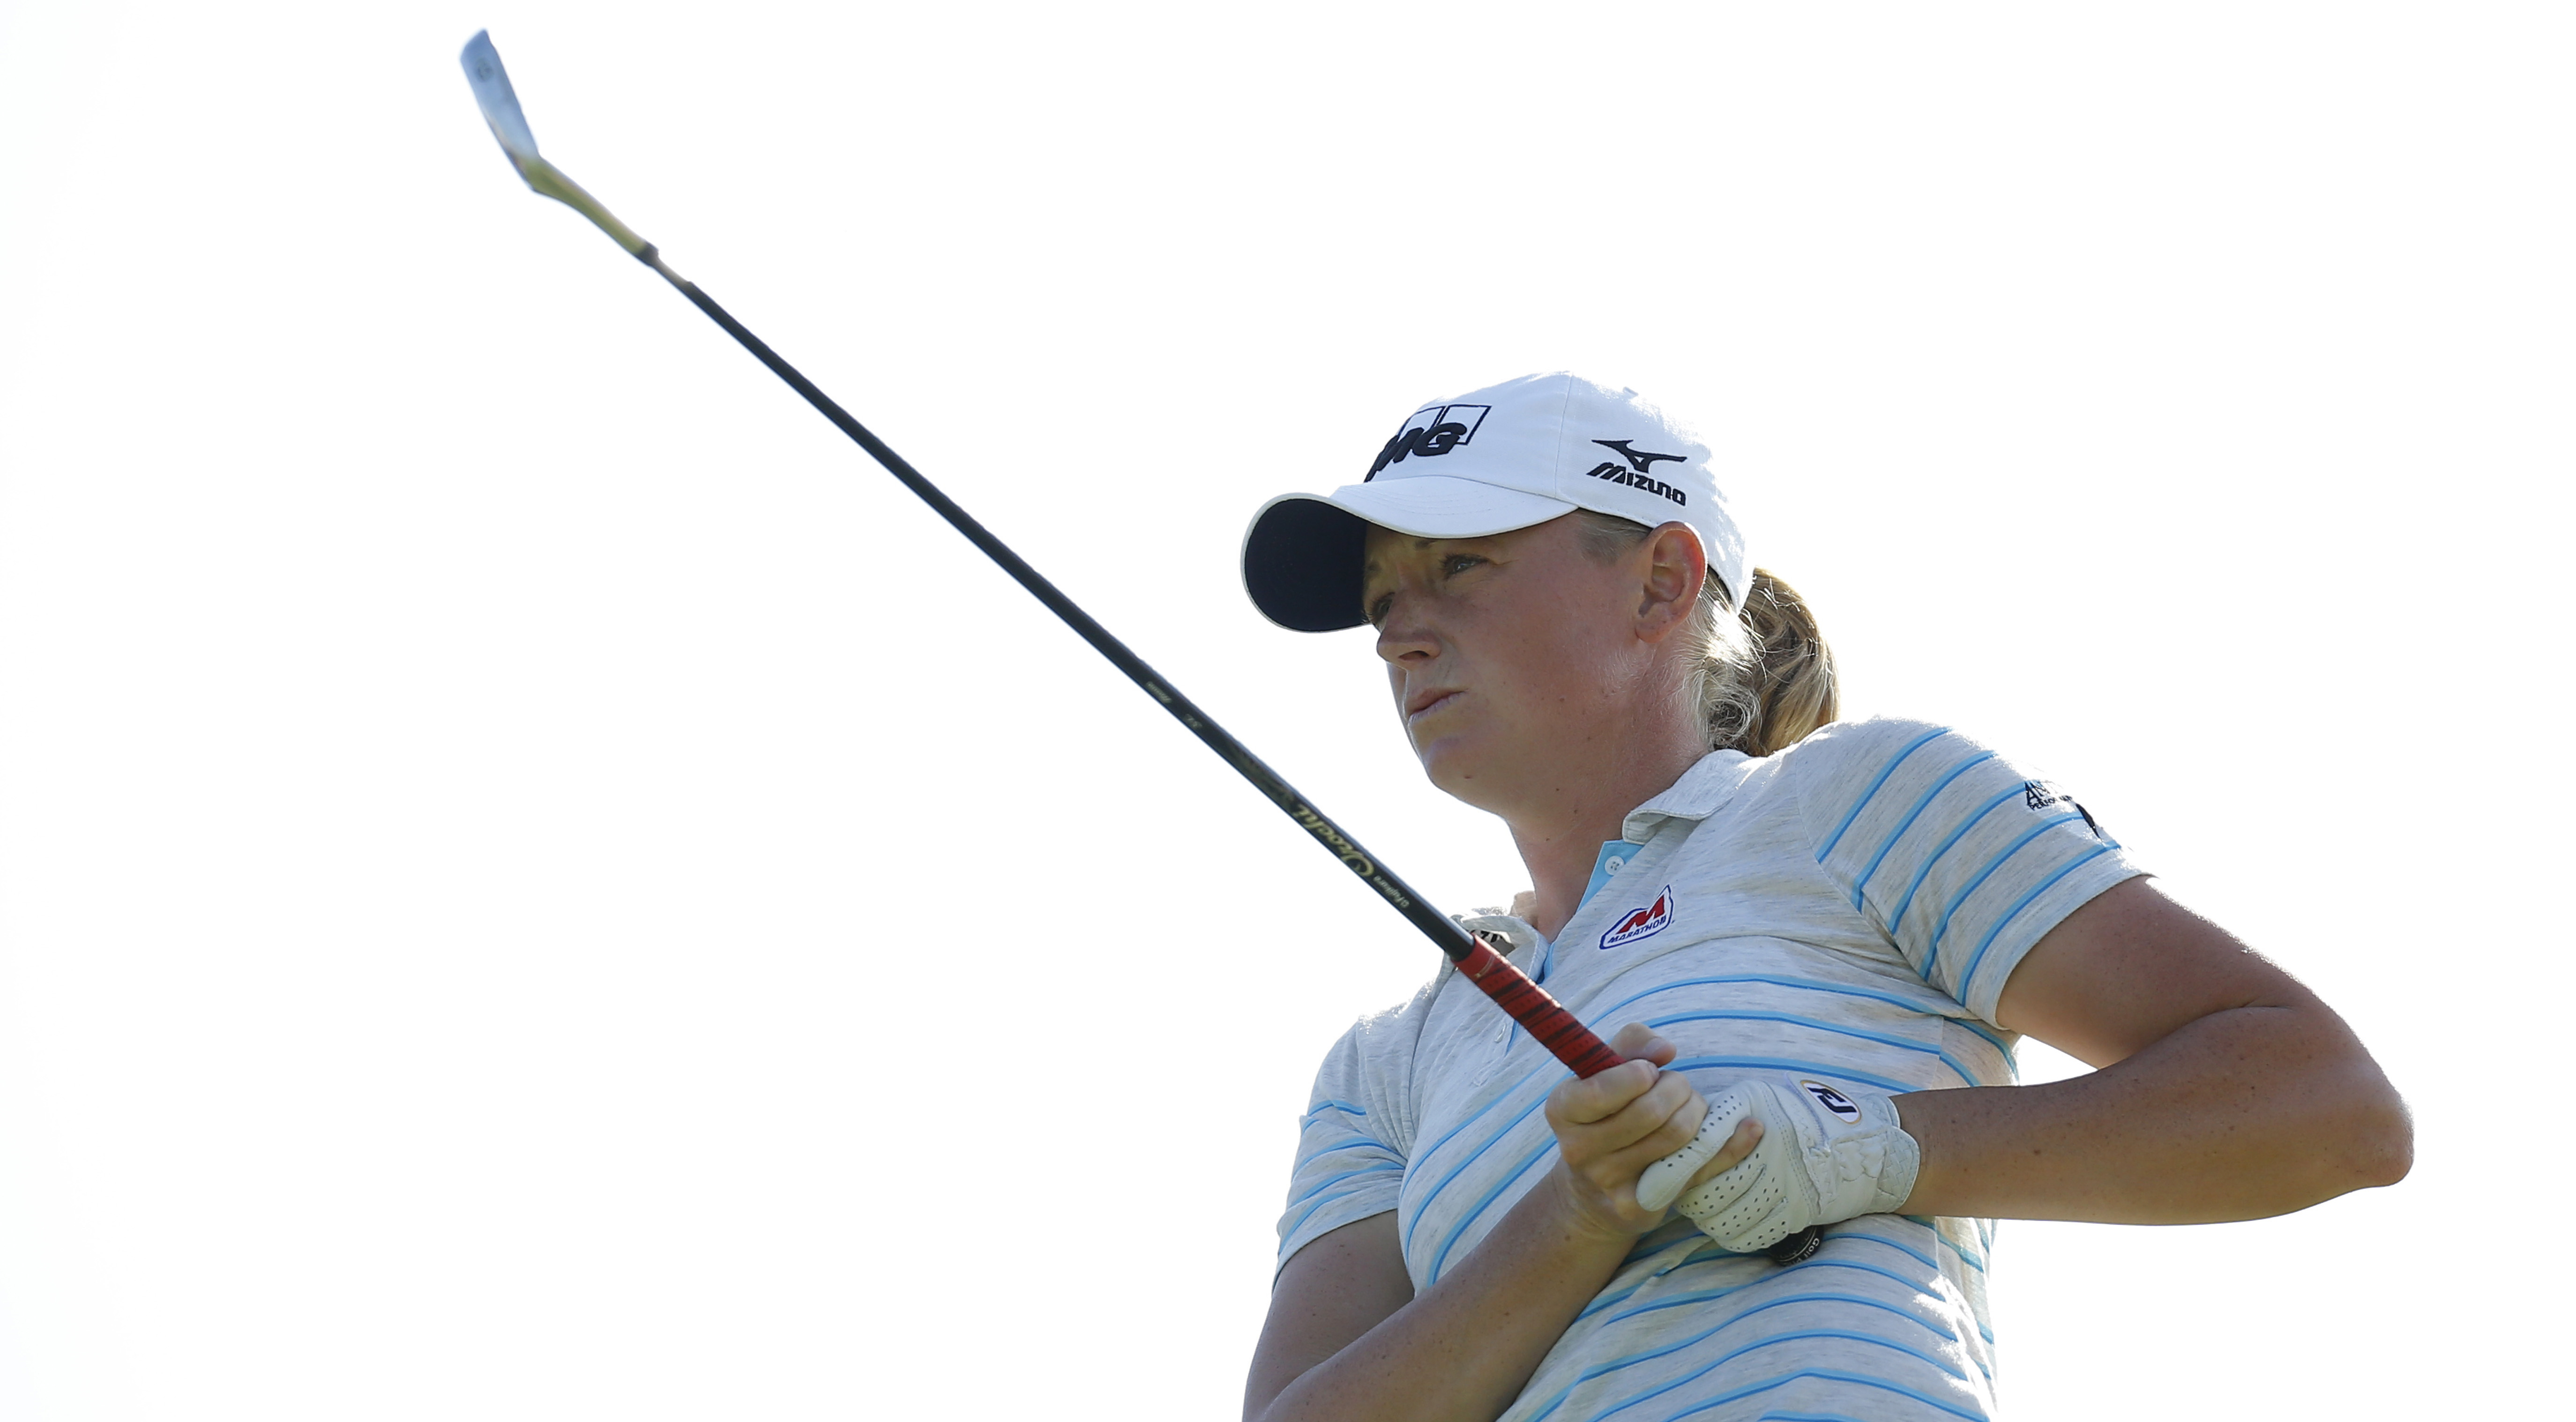 Stacy Lewis fired a 64 at the Robert Trent Jones Golf Trail (Senator), sharing the first-round lead with Mi Jung Hur.